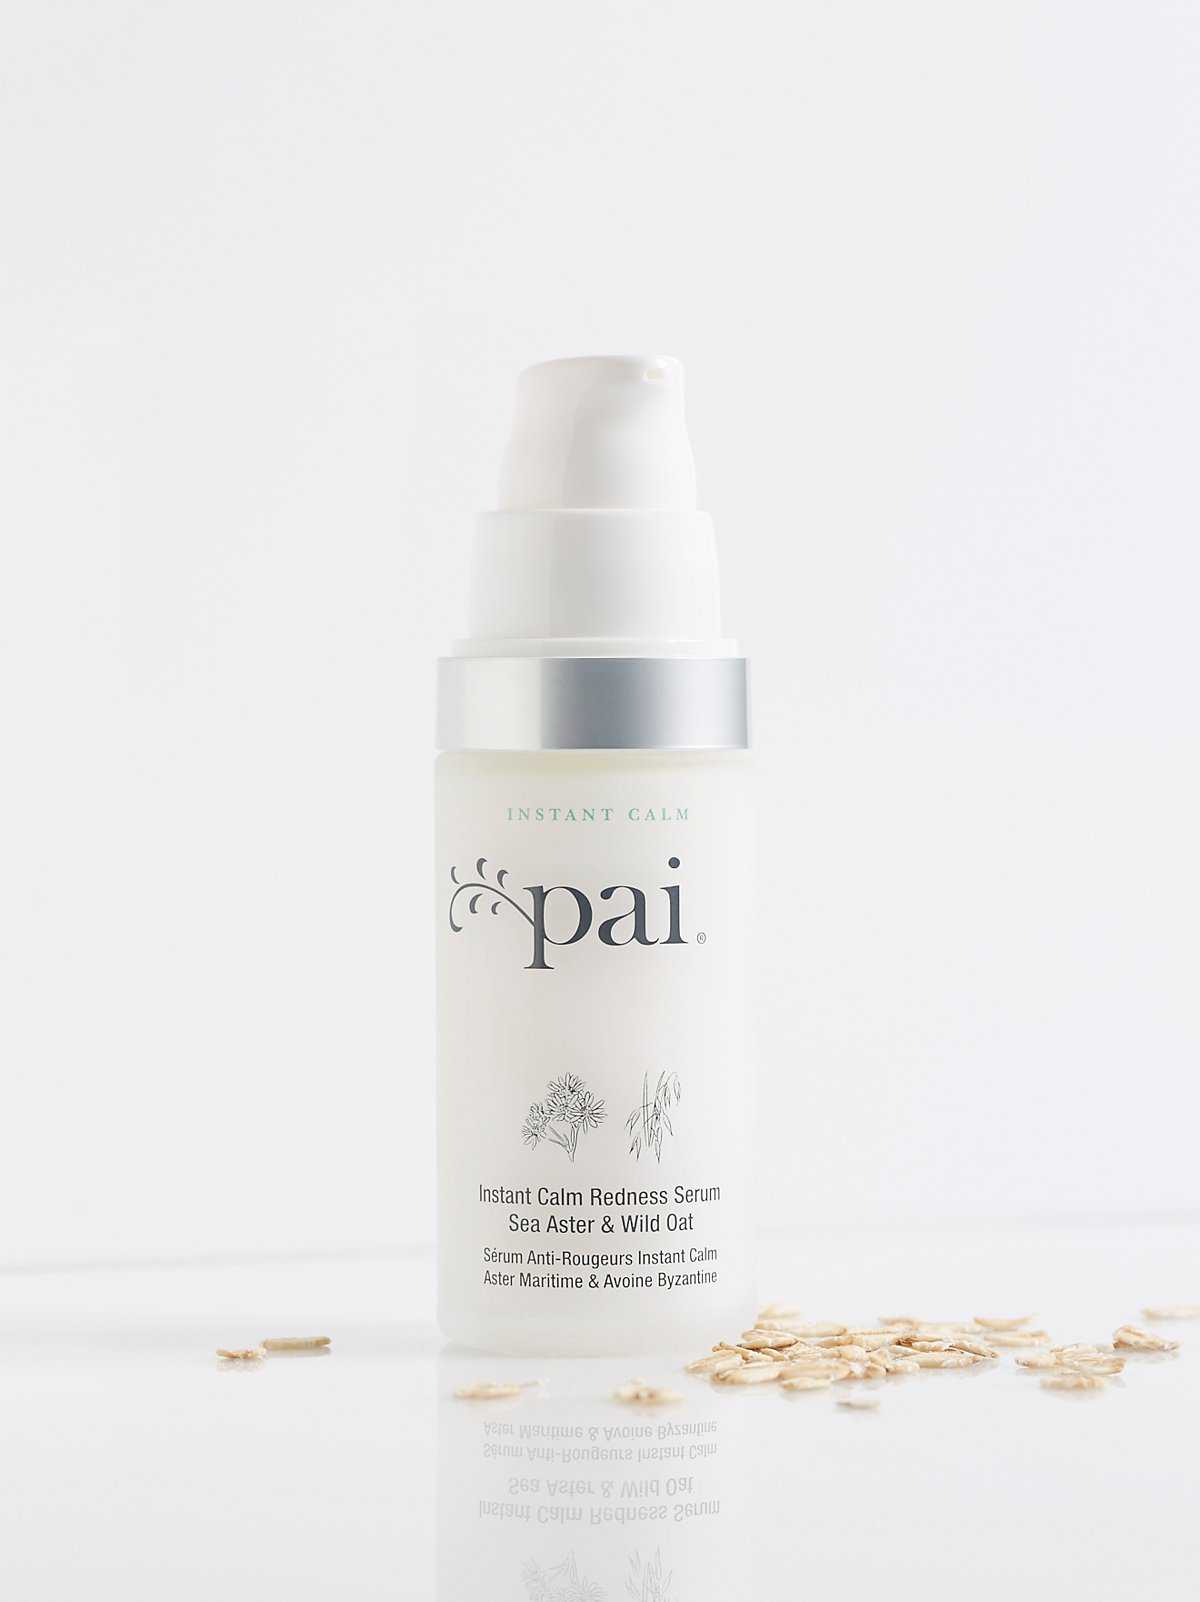 Instant Calm Sea Aster & Wild Oat Redness Serum